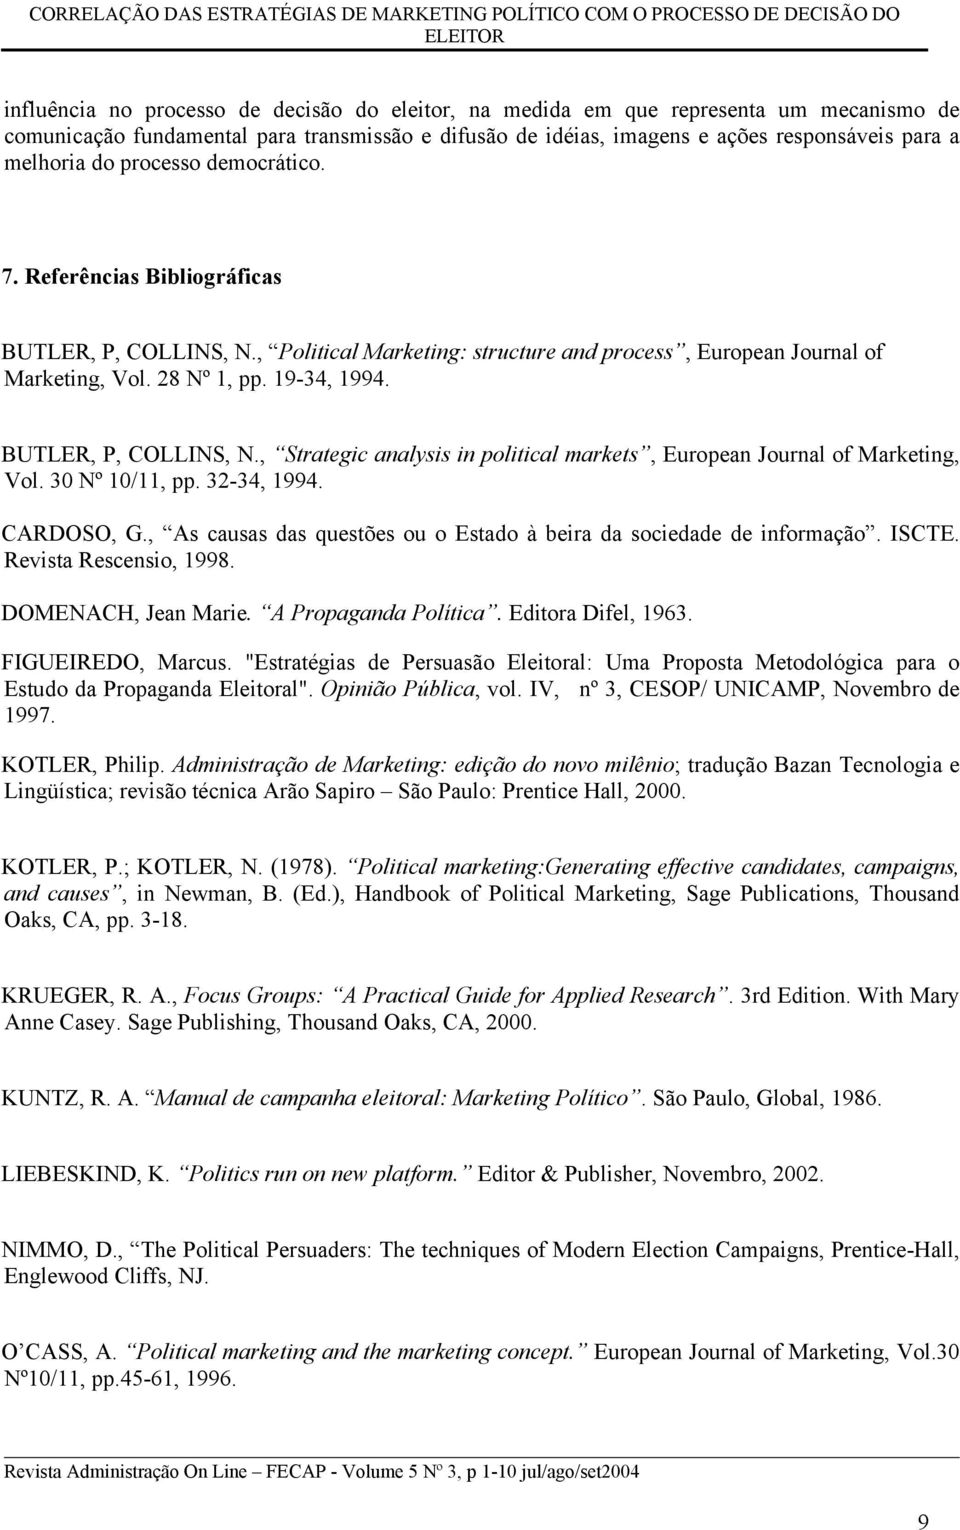 , Political Marketing: structure and process, European Journal of Marketing, Vol. 28 Nº 1, pp. 19-34, 1994. BUTLER, P, COLLINS, N.